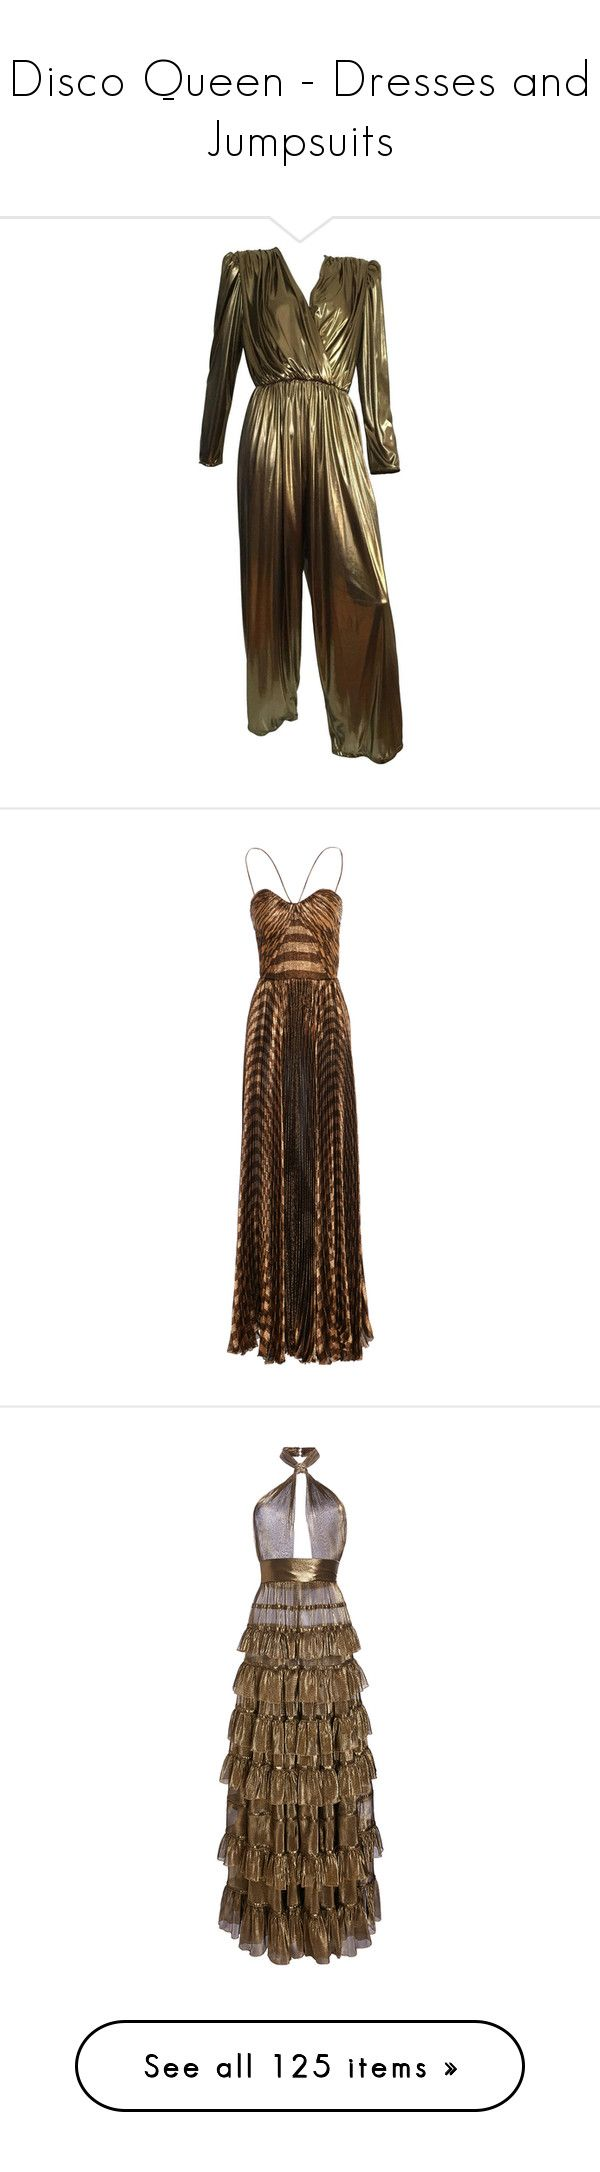 """Disco Queen - Dresses and Jumpsuits"" by metalheavy ❤ liked on Polyvore featuring jumpsuits, multiple, vintage jumpsuit, brown jumpsuit, jump suit, 80s jumpsuit, gold jump suit, dresses, maxi dress and metallic"